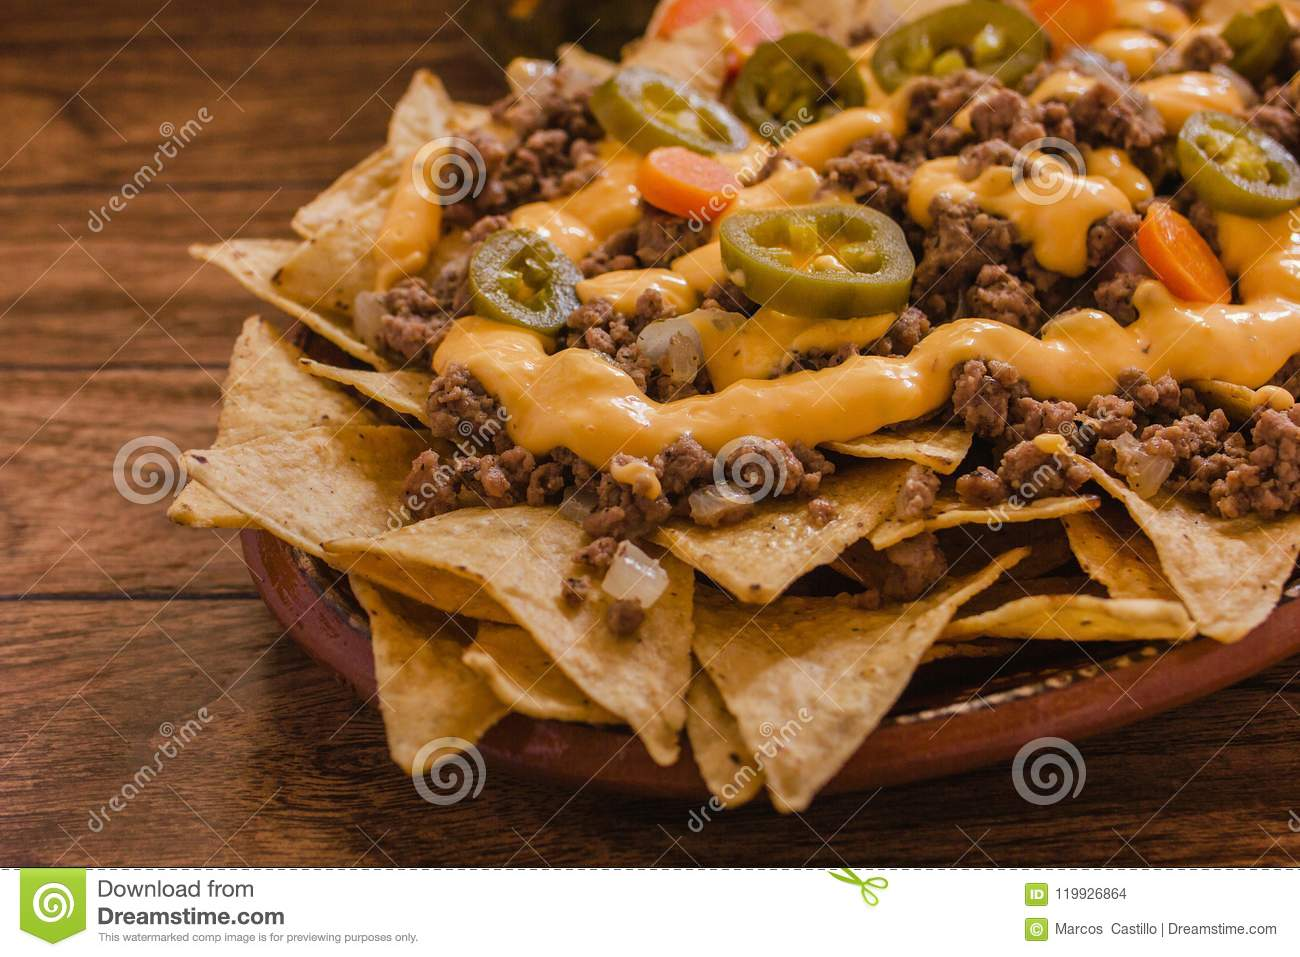 Nacho chips corn garnished with ground beef, melted cheese, jalapeño peppers, mexican spicy food in mexico